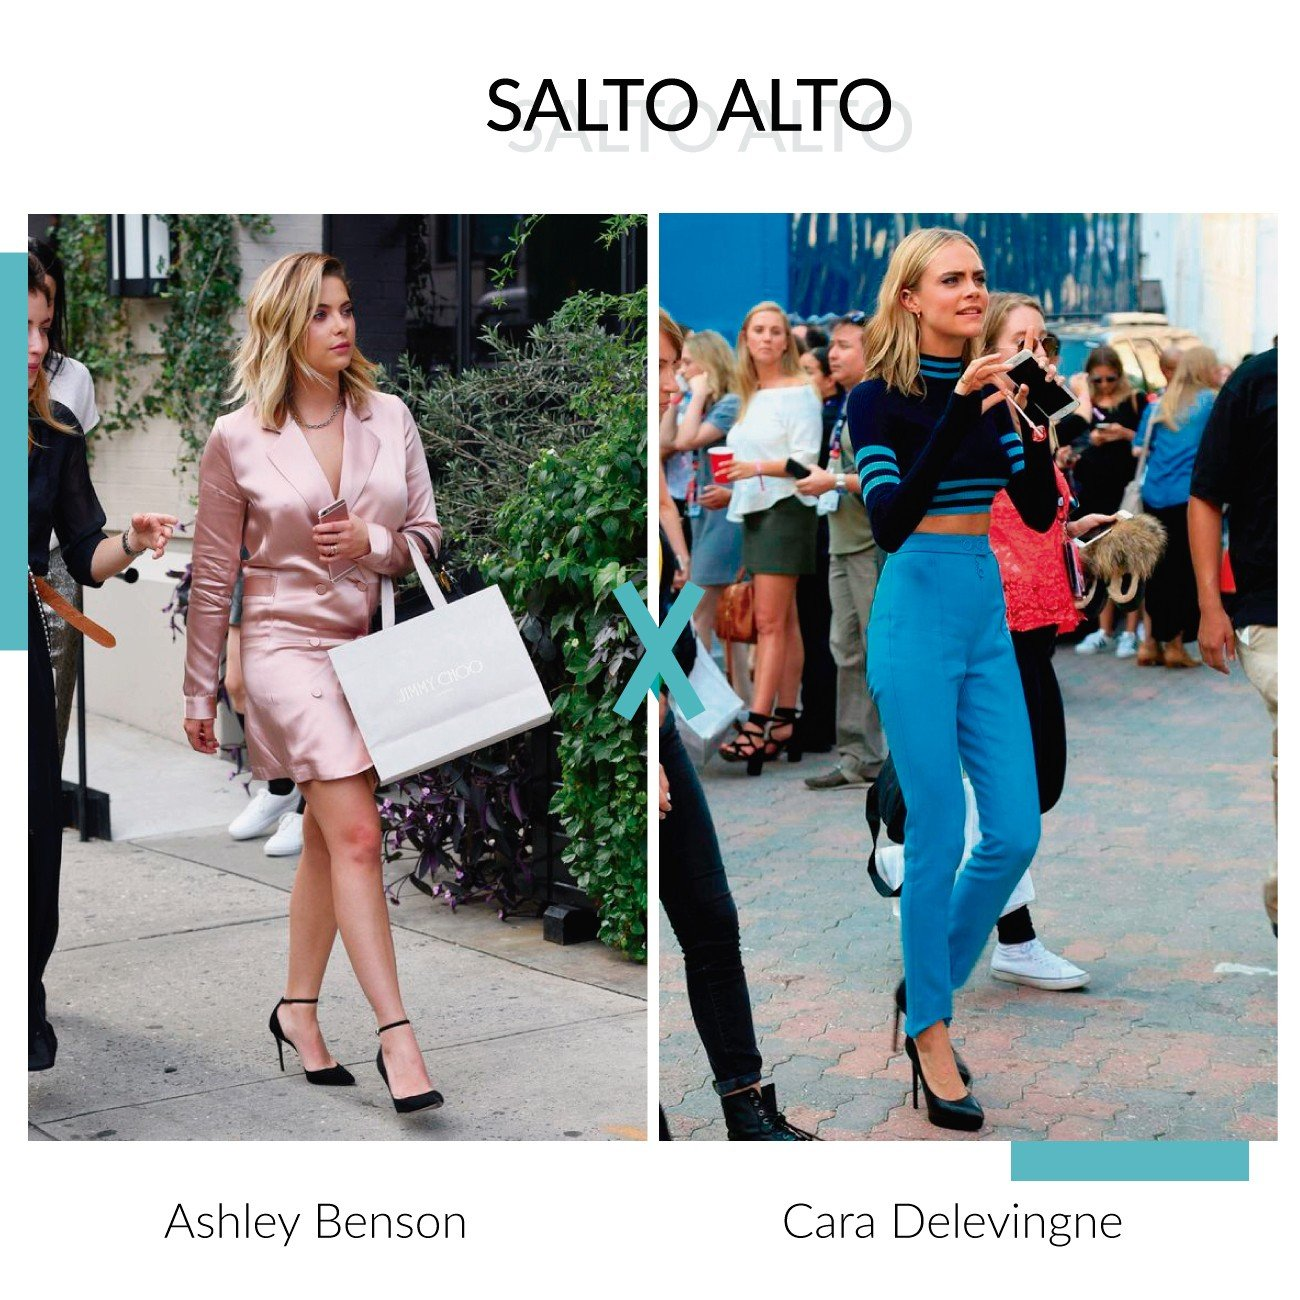 salto alto ashley benson e cara delevingne